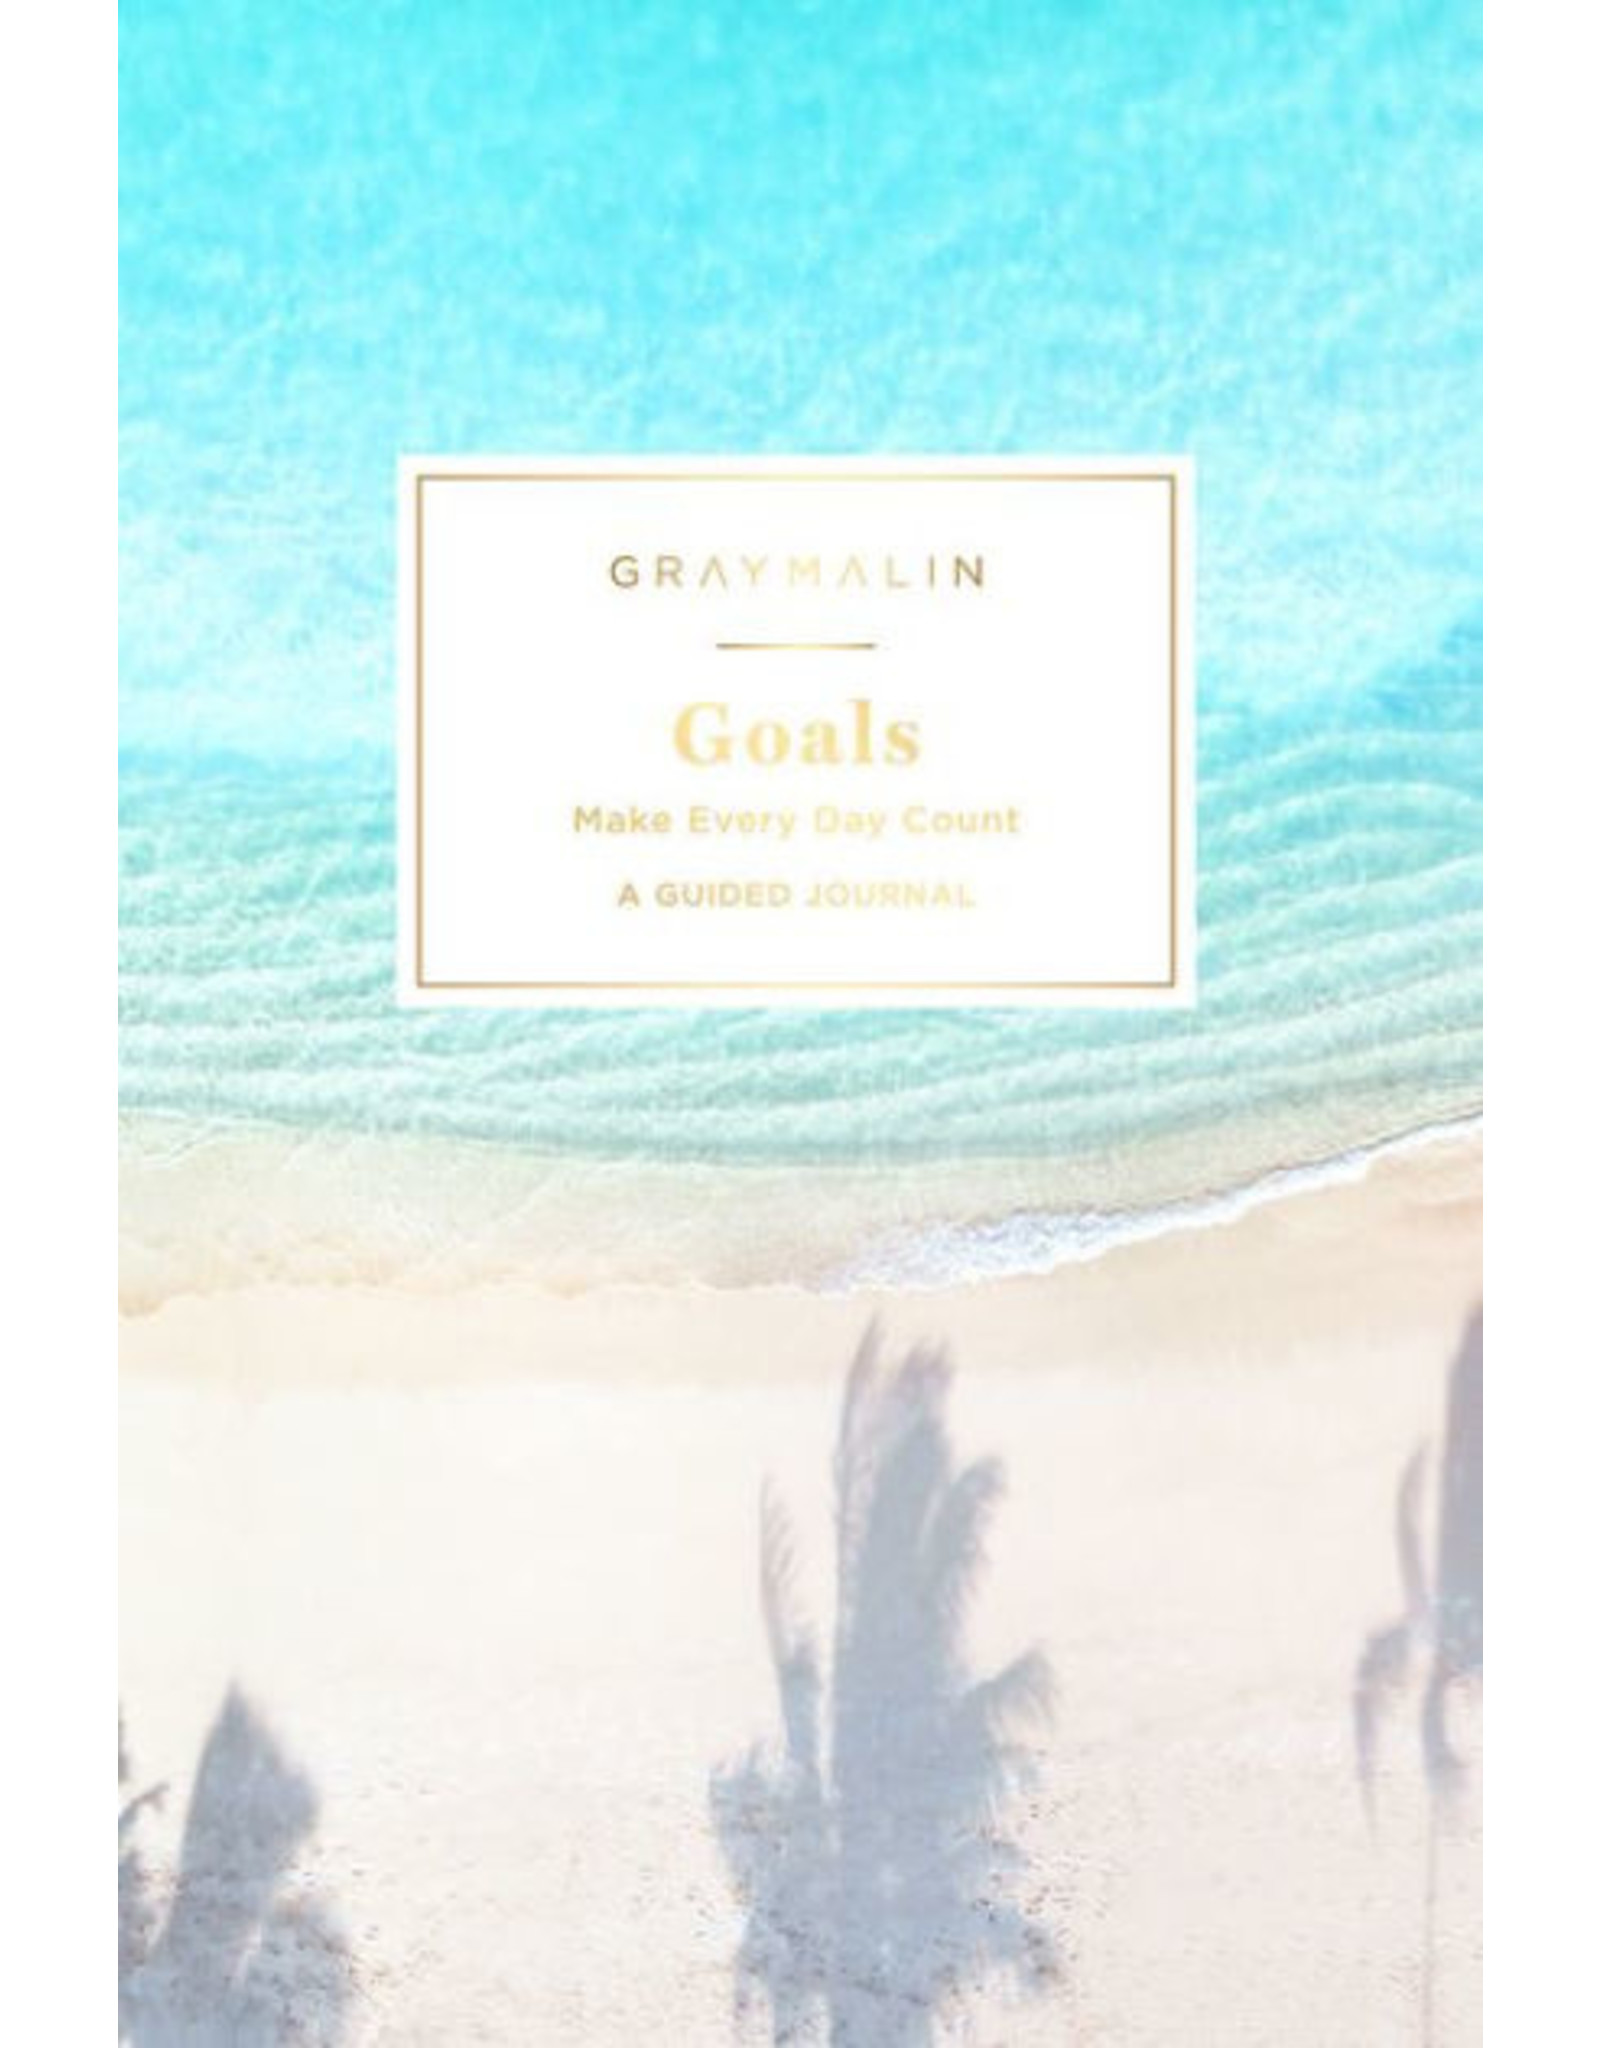 Hachette Gray Malin: Goals Guided Journal